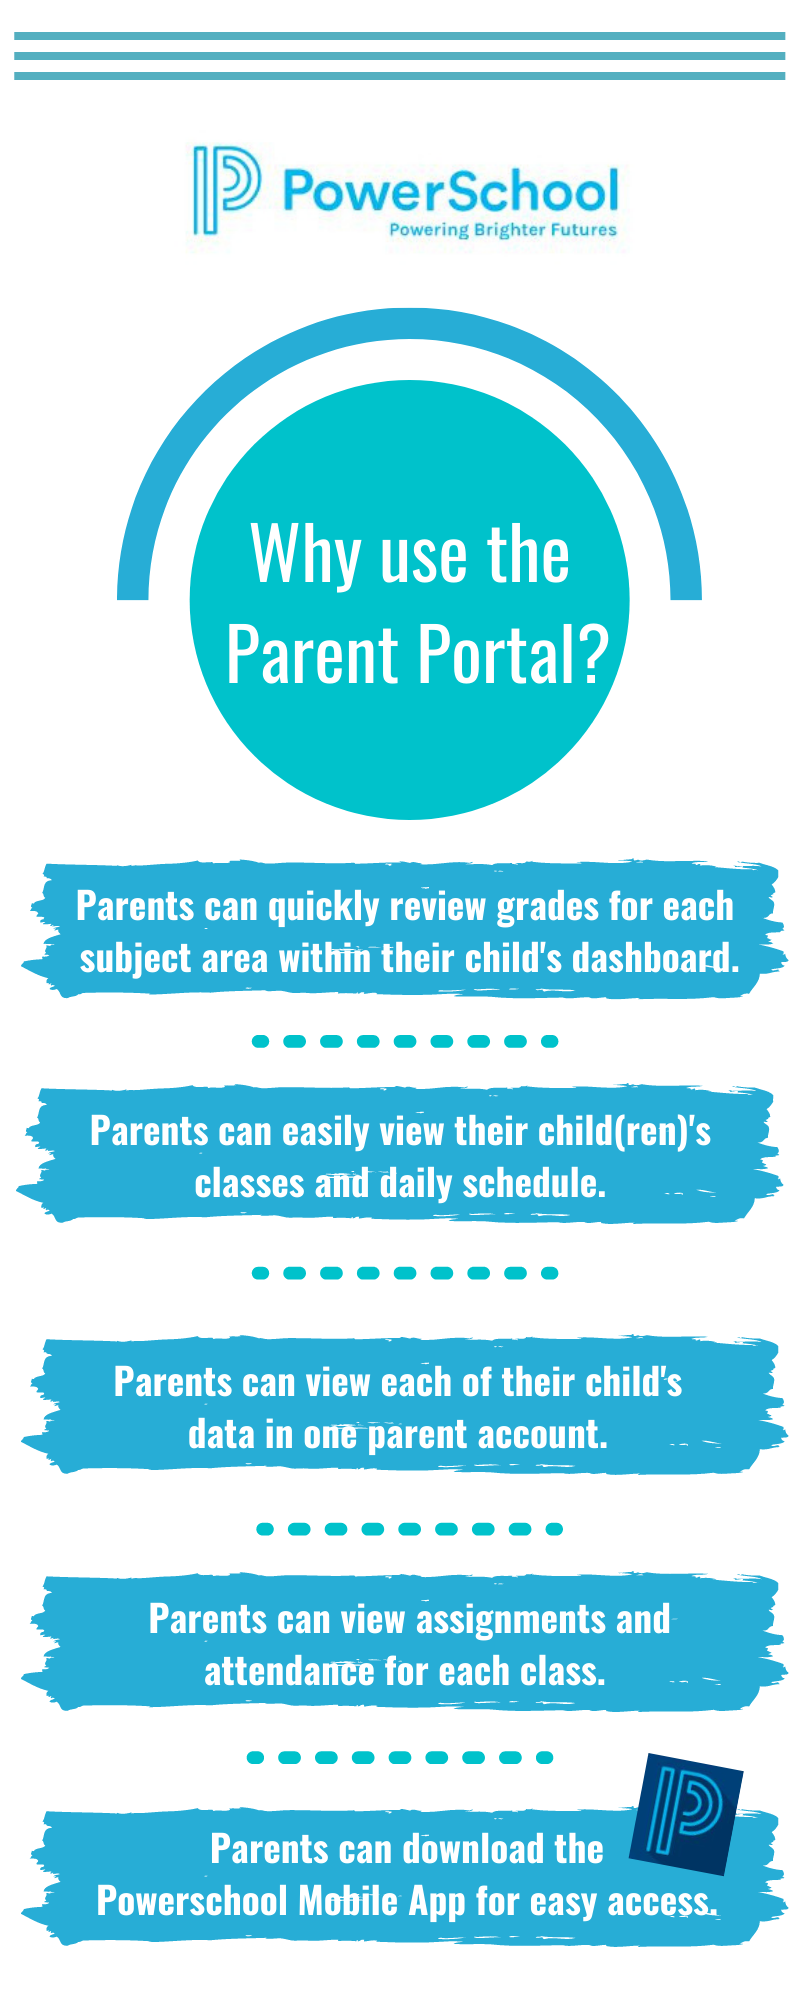 Why use the Parent Portal?